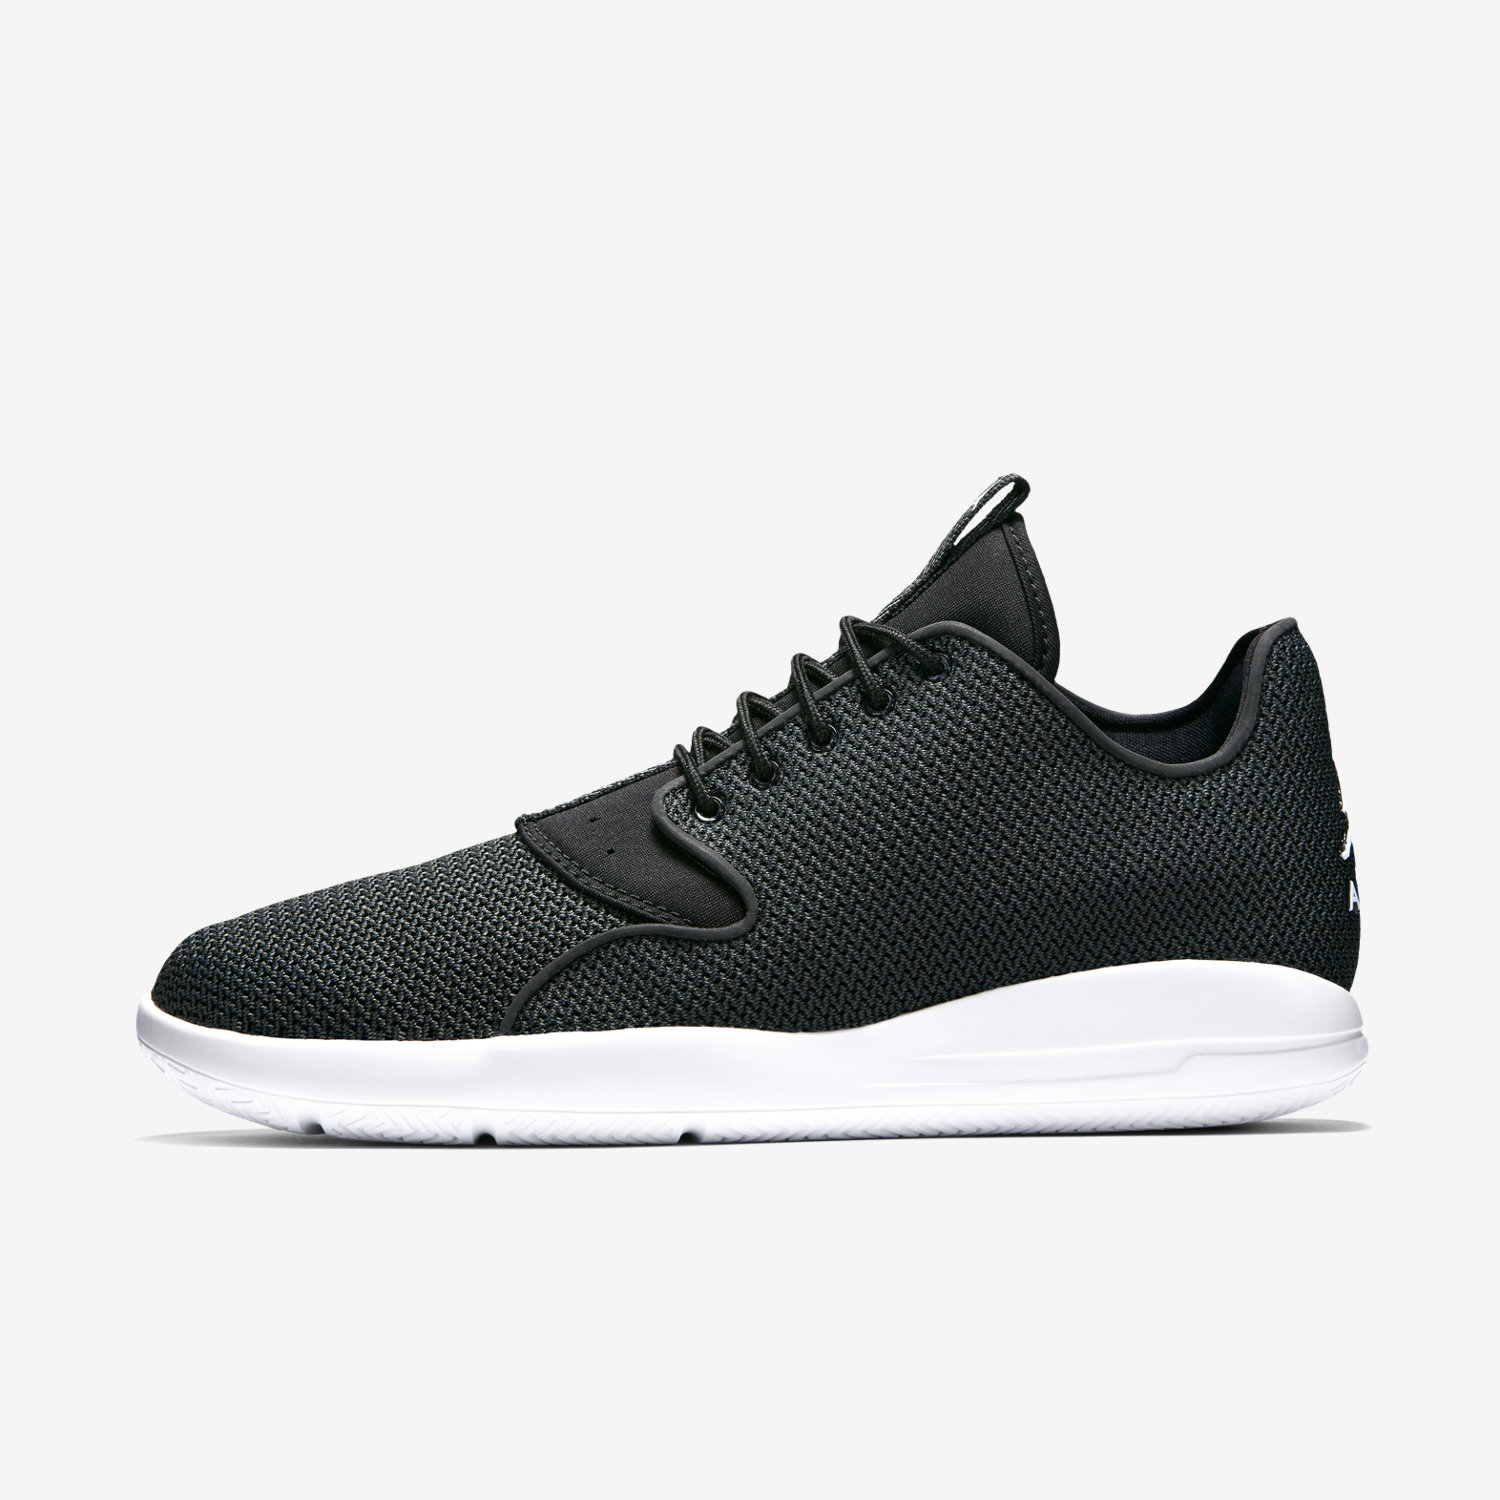 Jordan Eclipse - Men's - Basketball - Shoes - Black/Pure Platinum ...